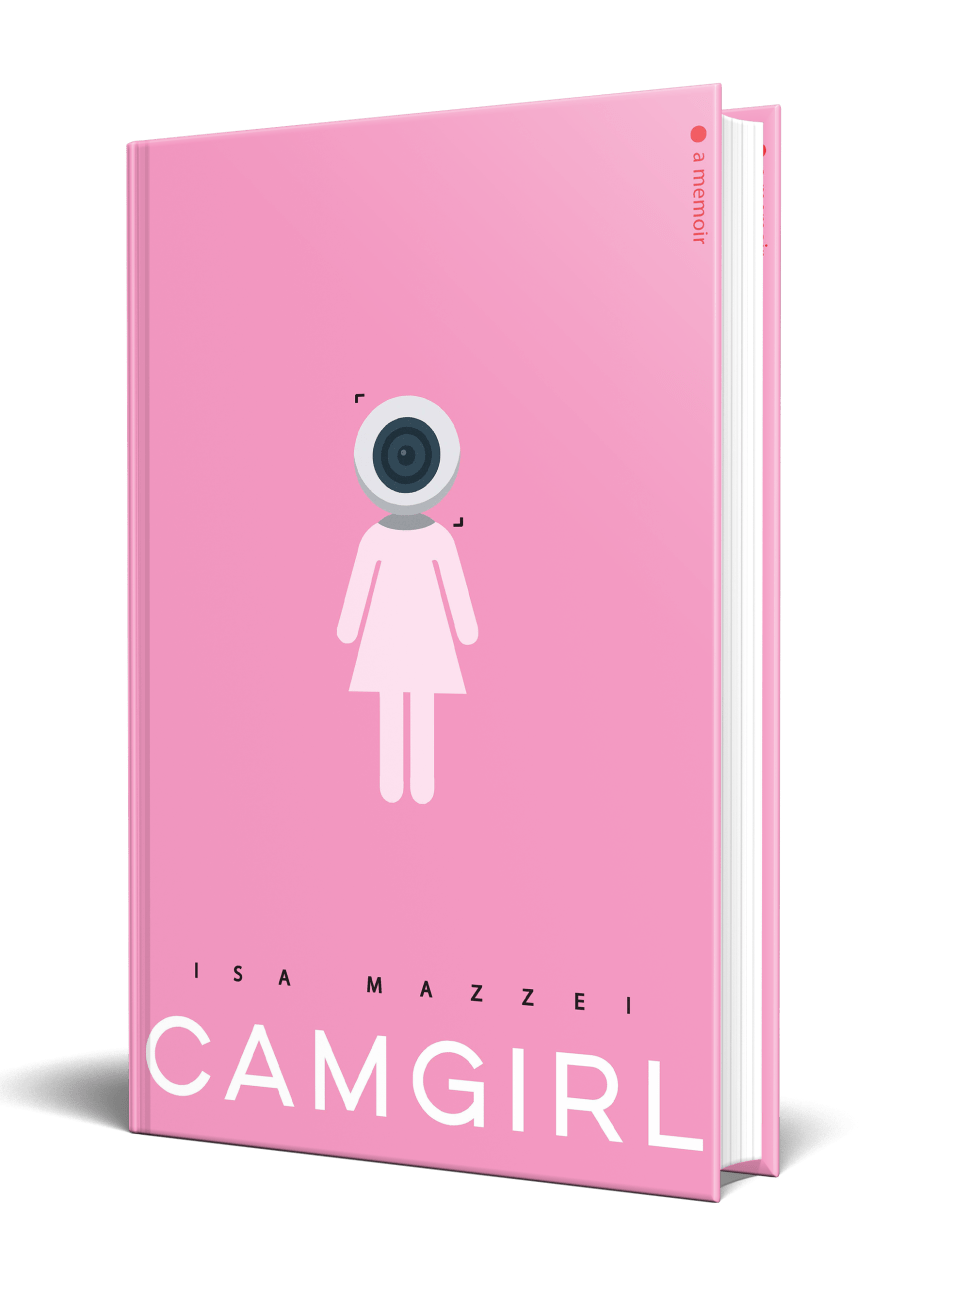 In 'Camgirl,' Isa Mazzei Speaks Frankly About the Stereotypes of Sex Work